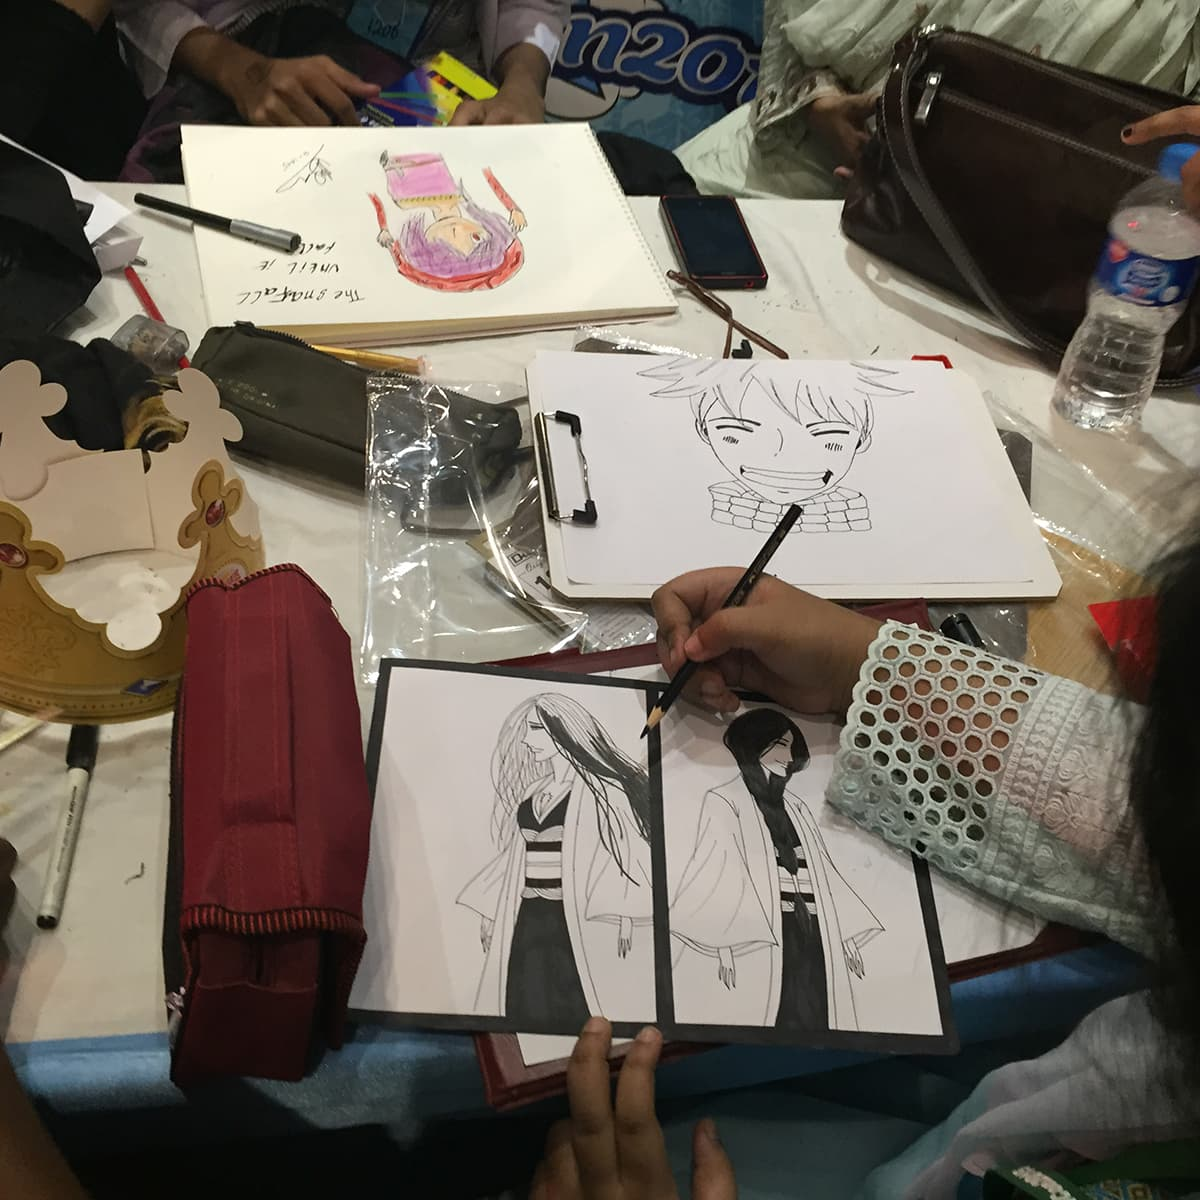 Participants taking part in fanart competition at the event. Photo: Ema Anis